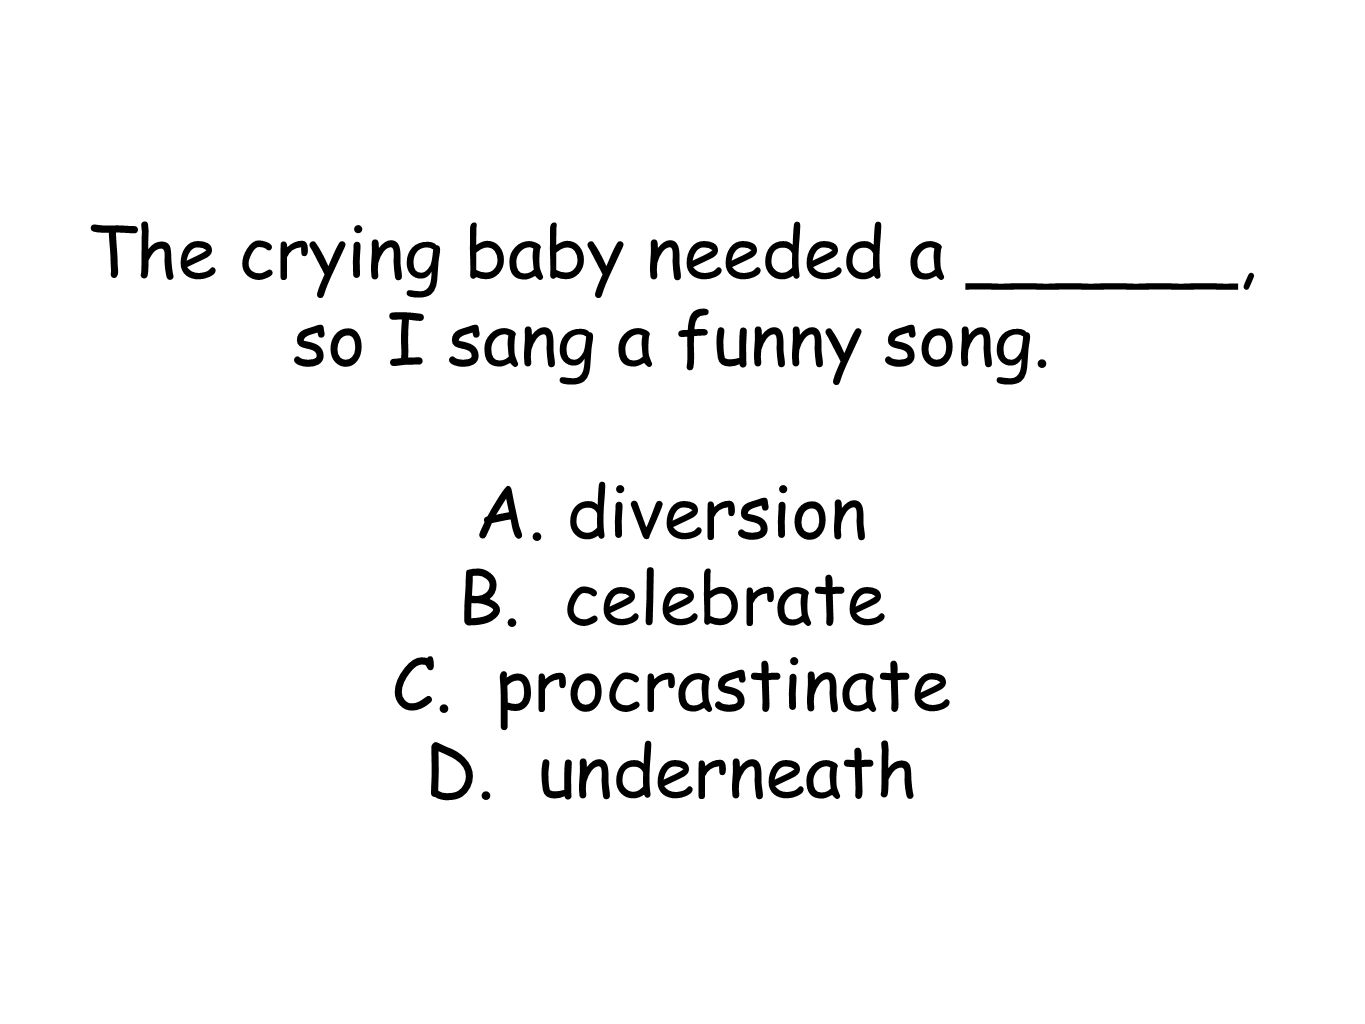 The crying baby needed a ______, so I sang a funny song.